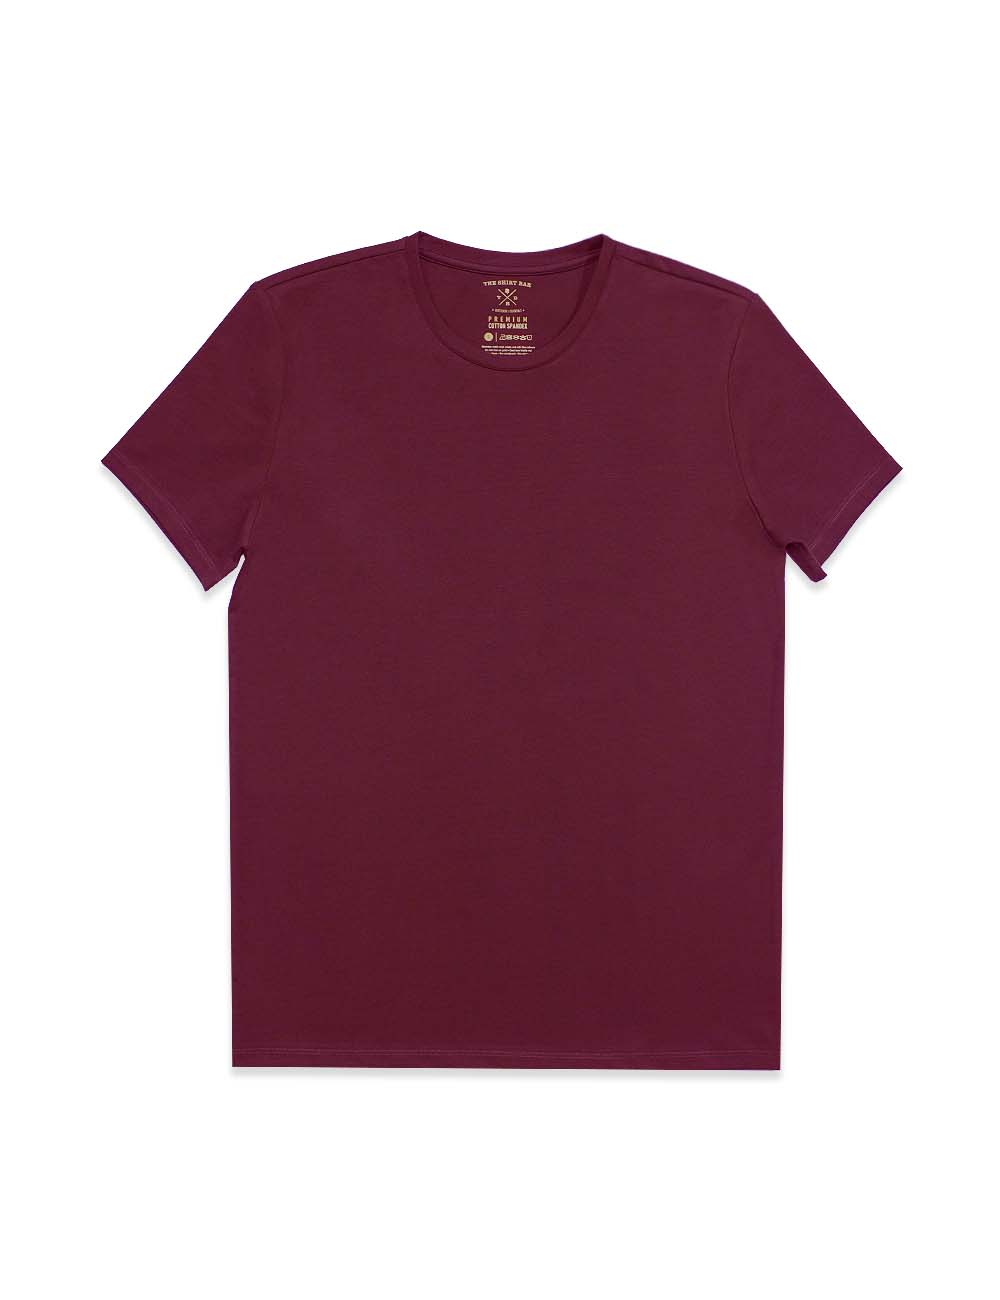 Slim Fit Maroon Premium Cotton Stretch Crew Neck T-Shirt TS1A4.3